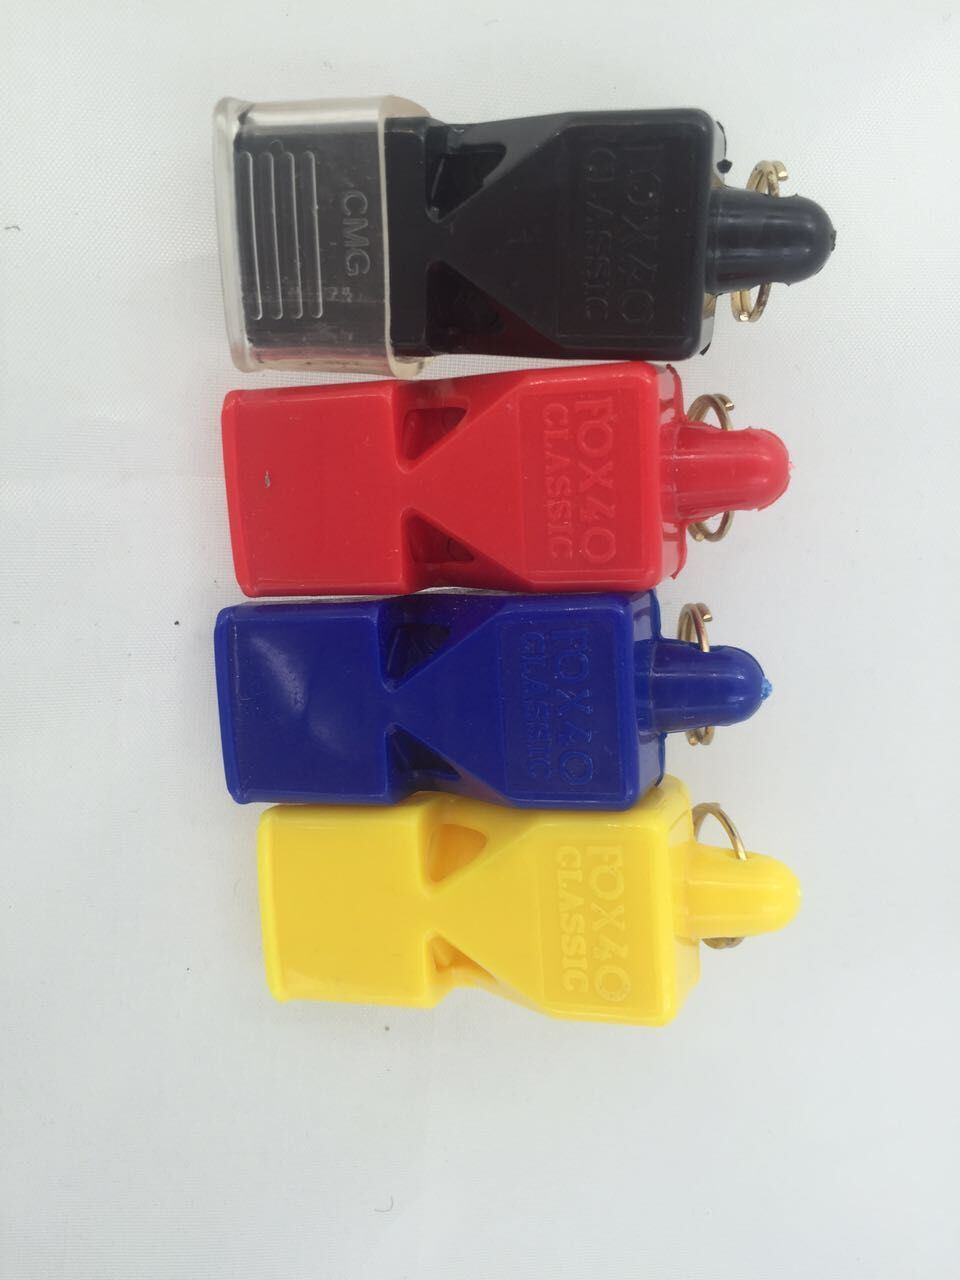 Sports professional Referee Whistle with Lanyard